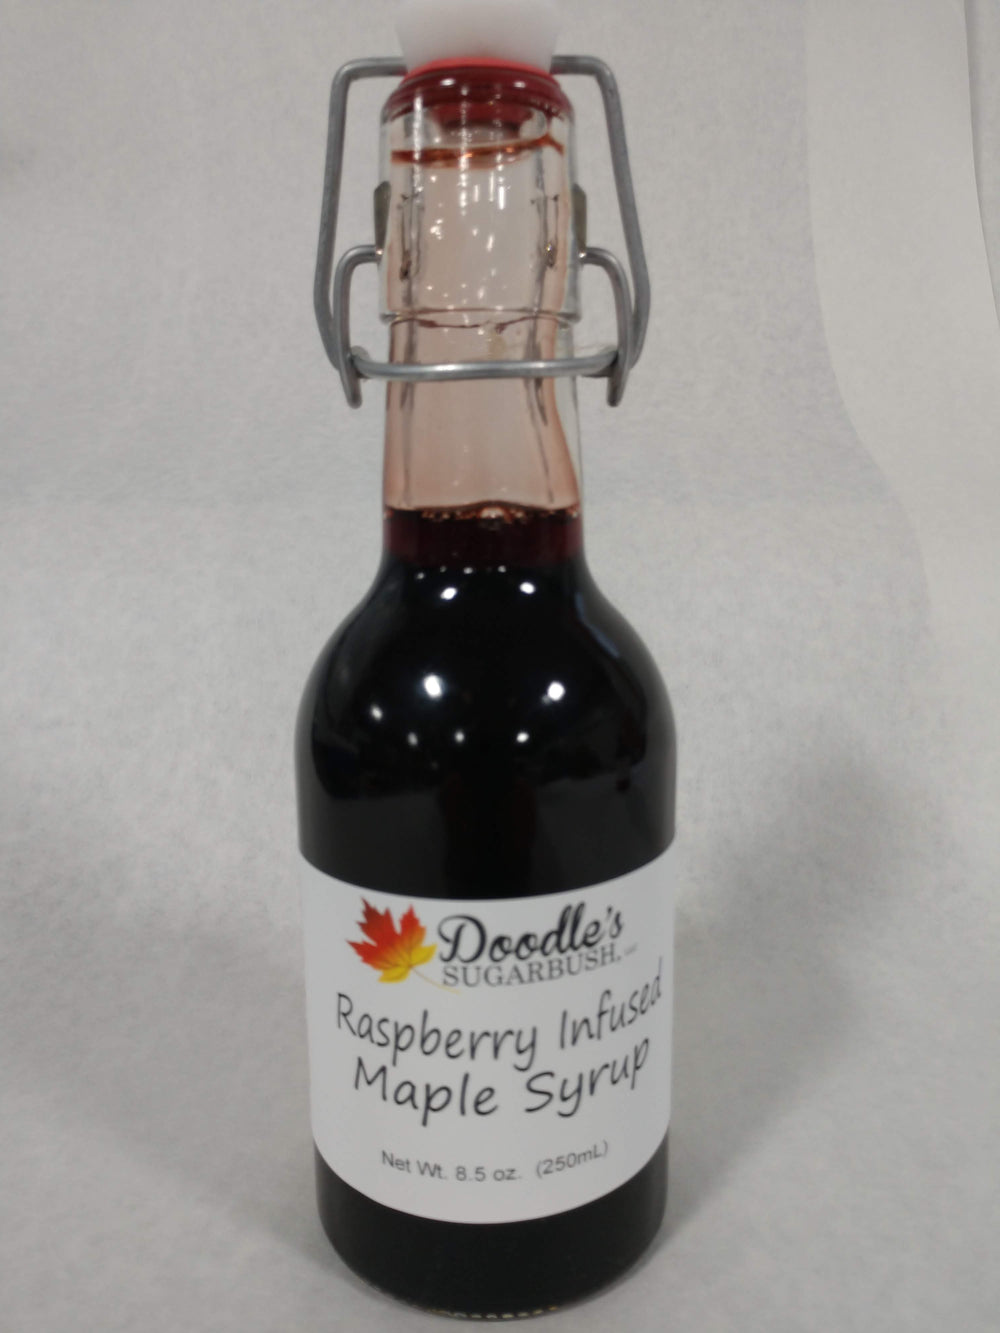 Raspberry Infused Maple Syrup